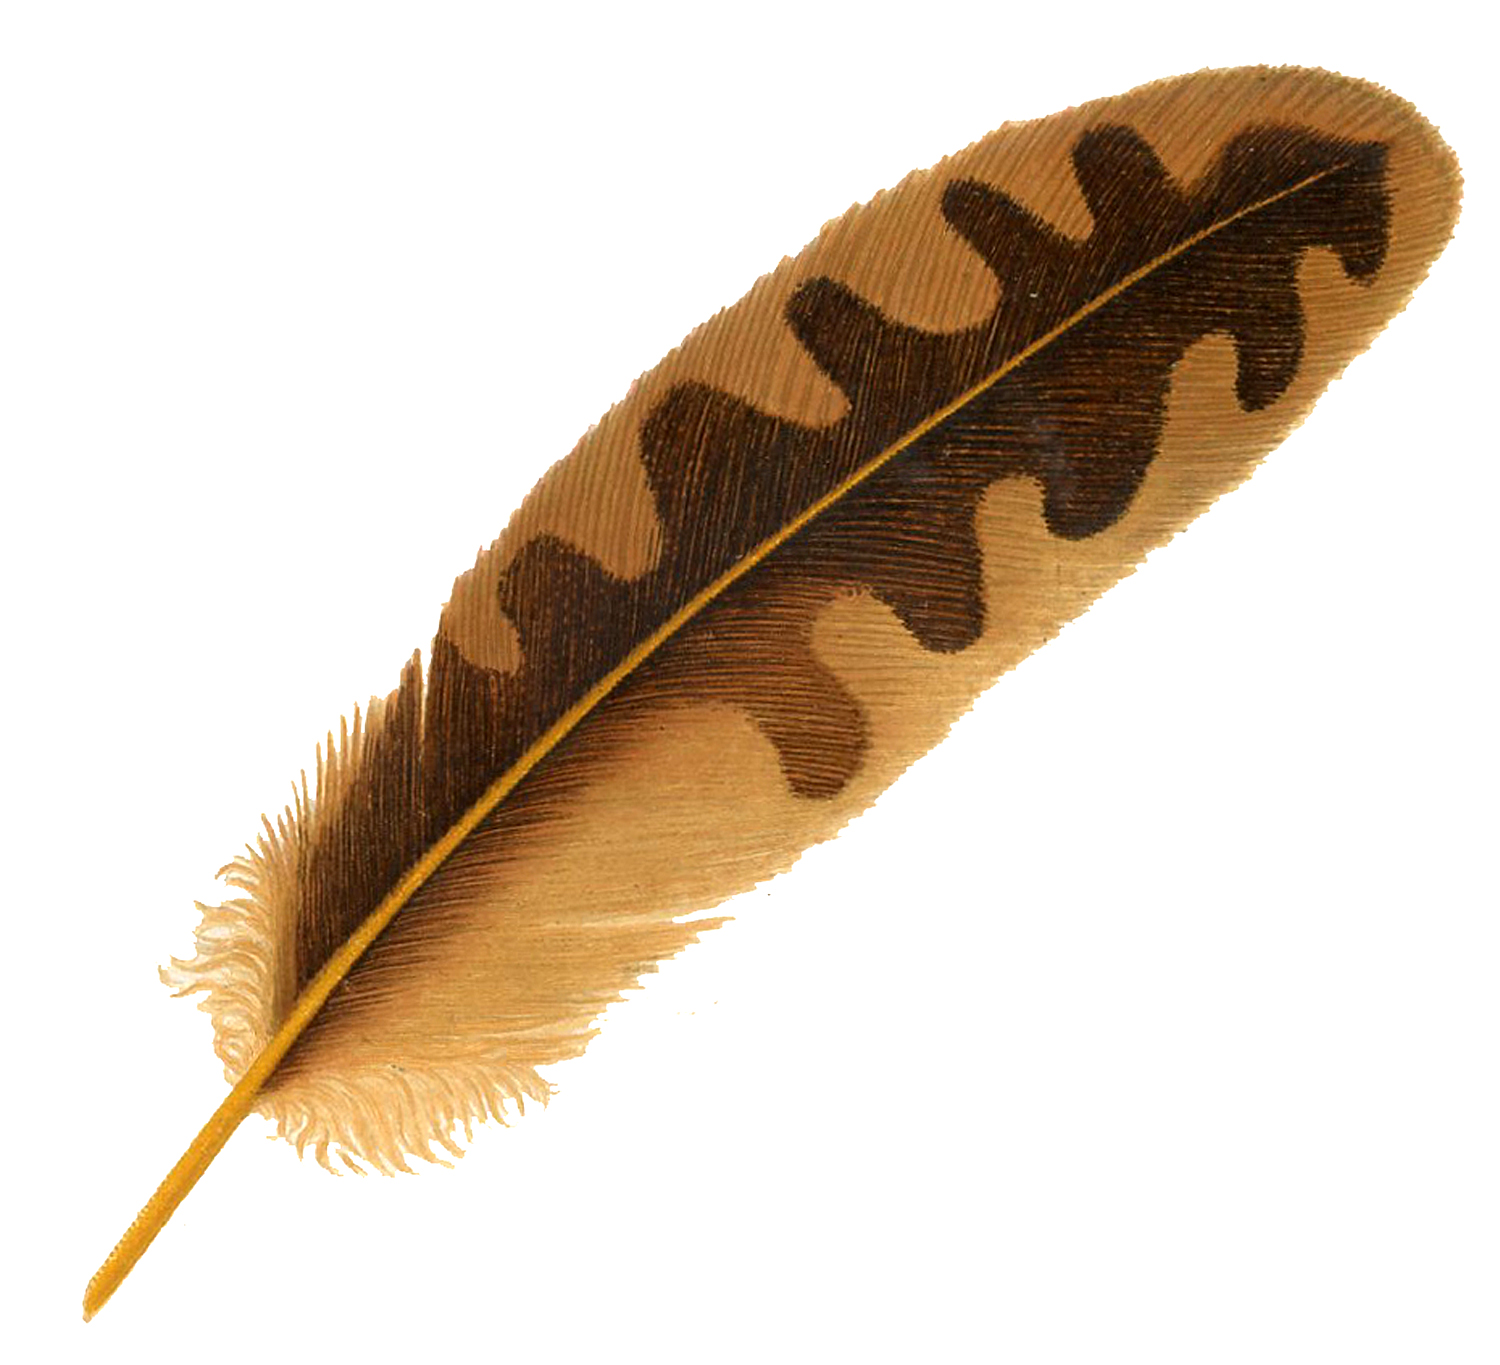 Vintage Feather Image Brown